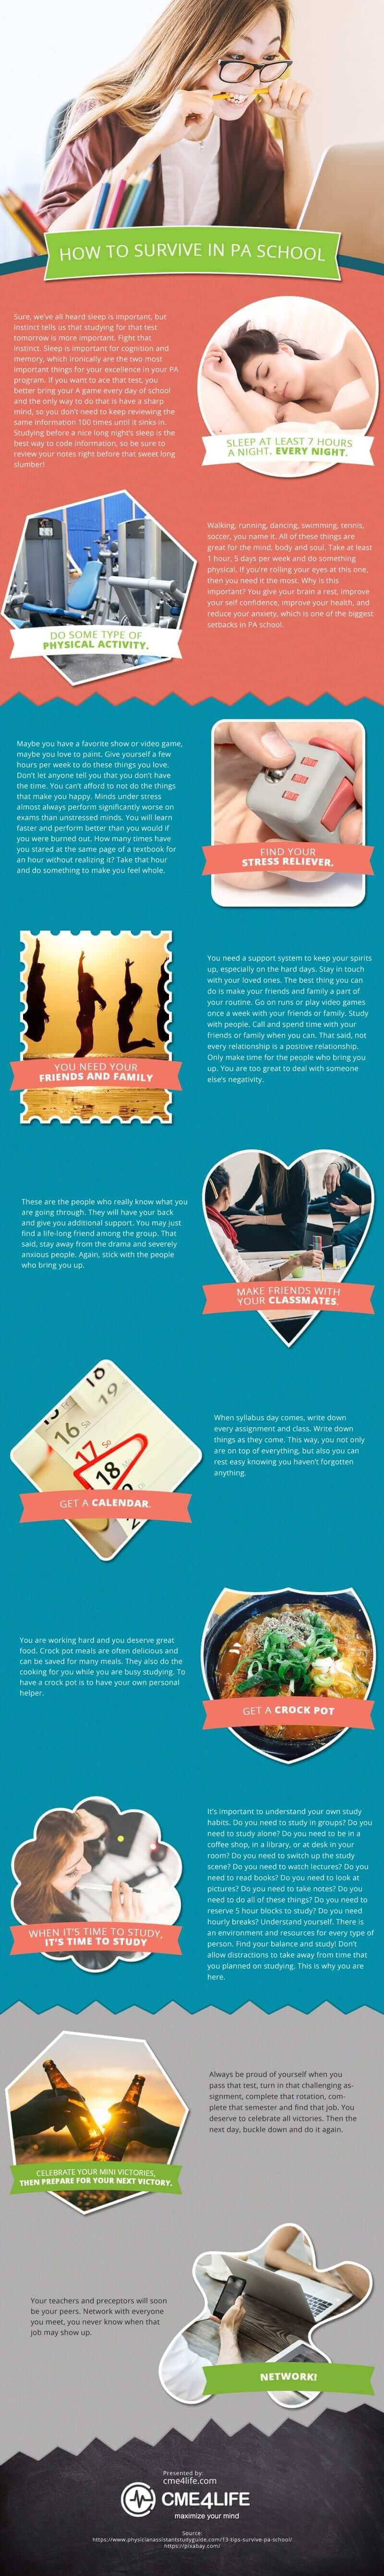 How to Survive in PA School [infographic]